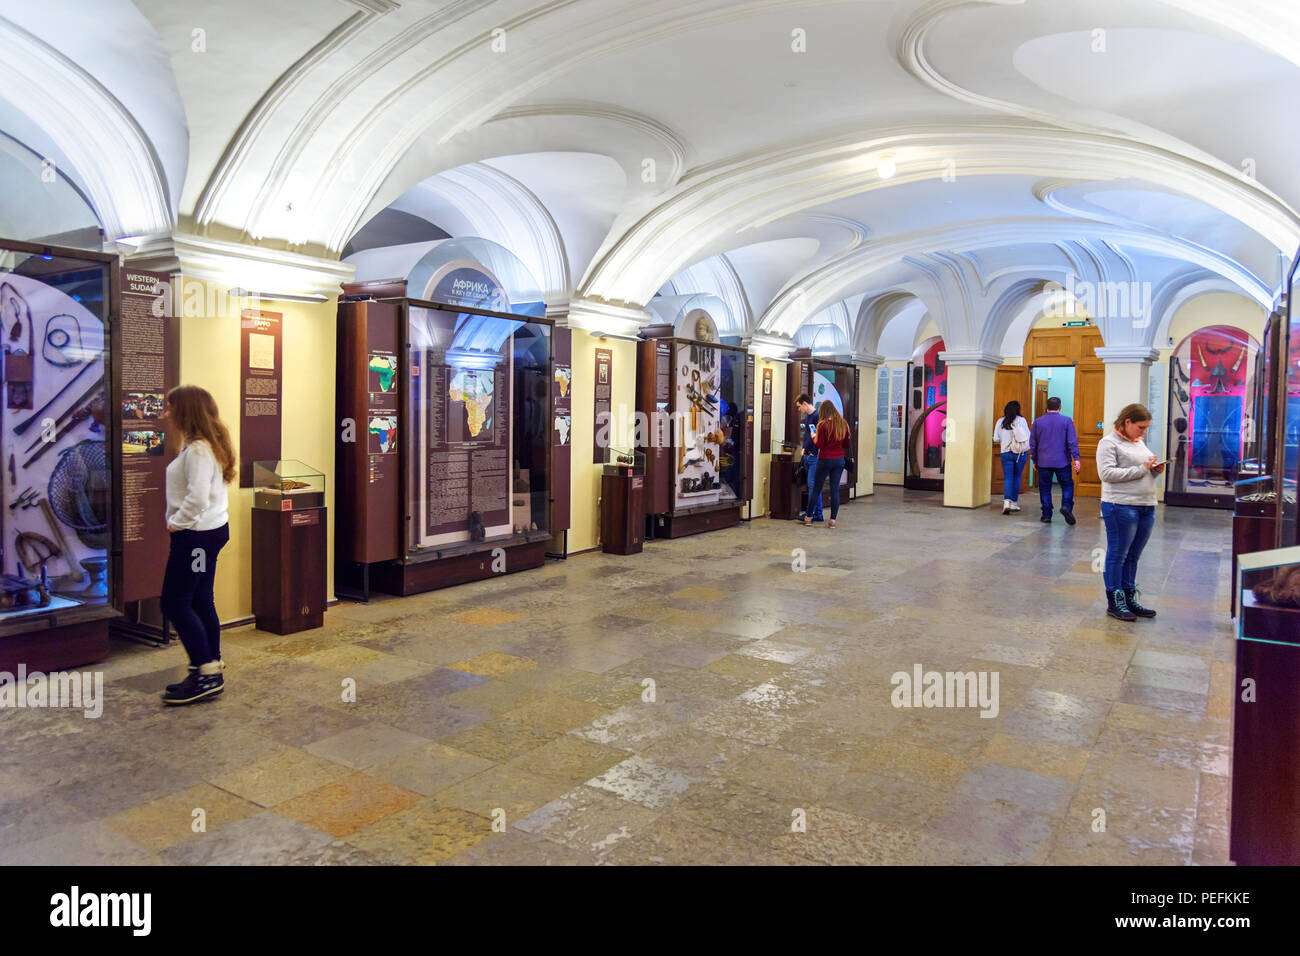 Saint Petersburg, Russia - January 2, 2018: Tourists in Museum of Anthropology and Ethnography the Kunstkamera - Stock Image